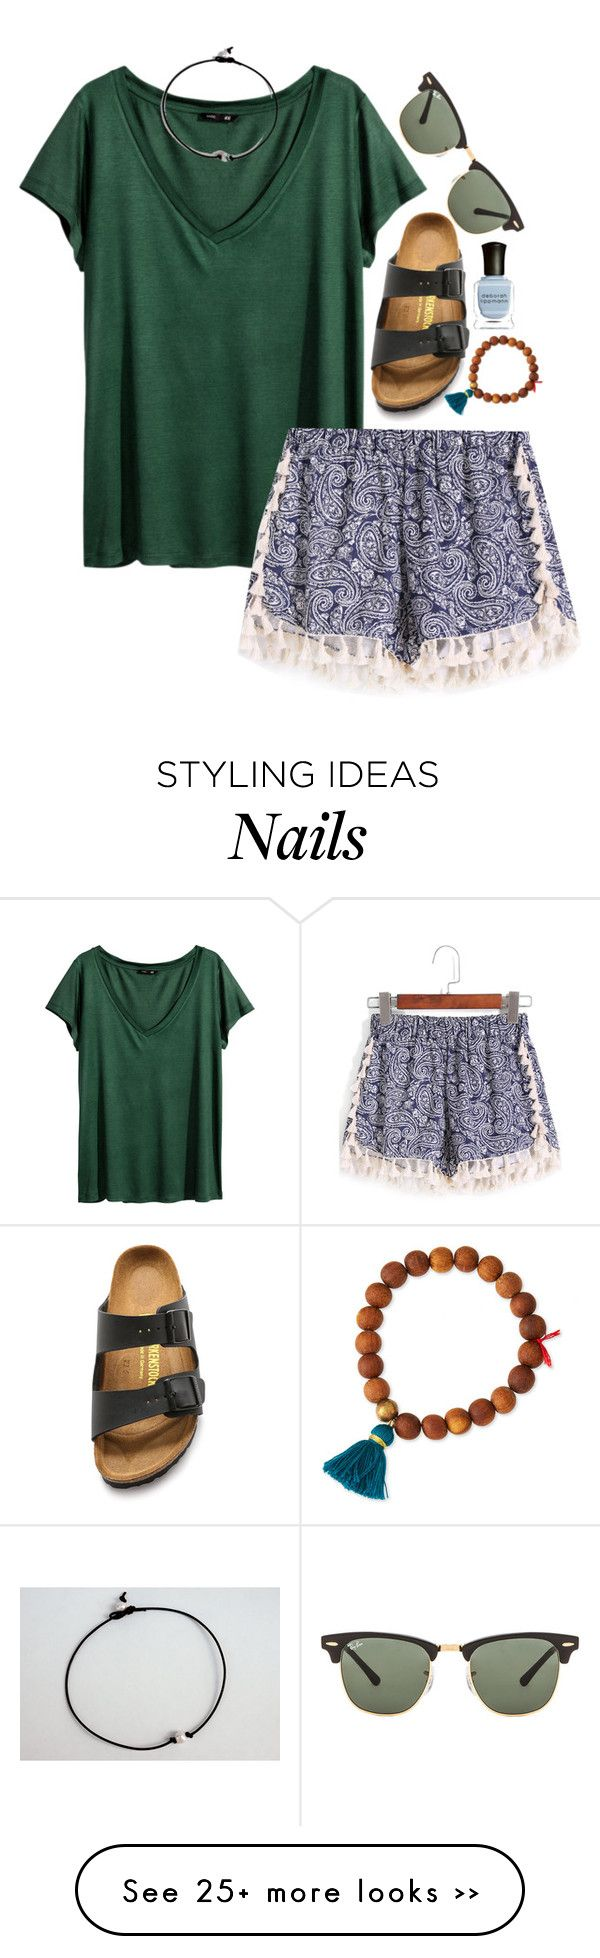 """""""i can show you the world. -Marina """" by the-preps on Polyvore featuring H&M, Birkenstock, Lead, Deborah Lippmann and Ray-Ban"""